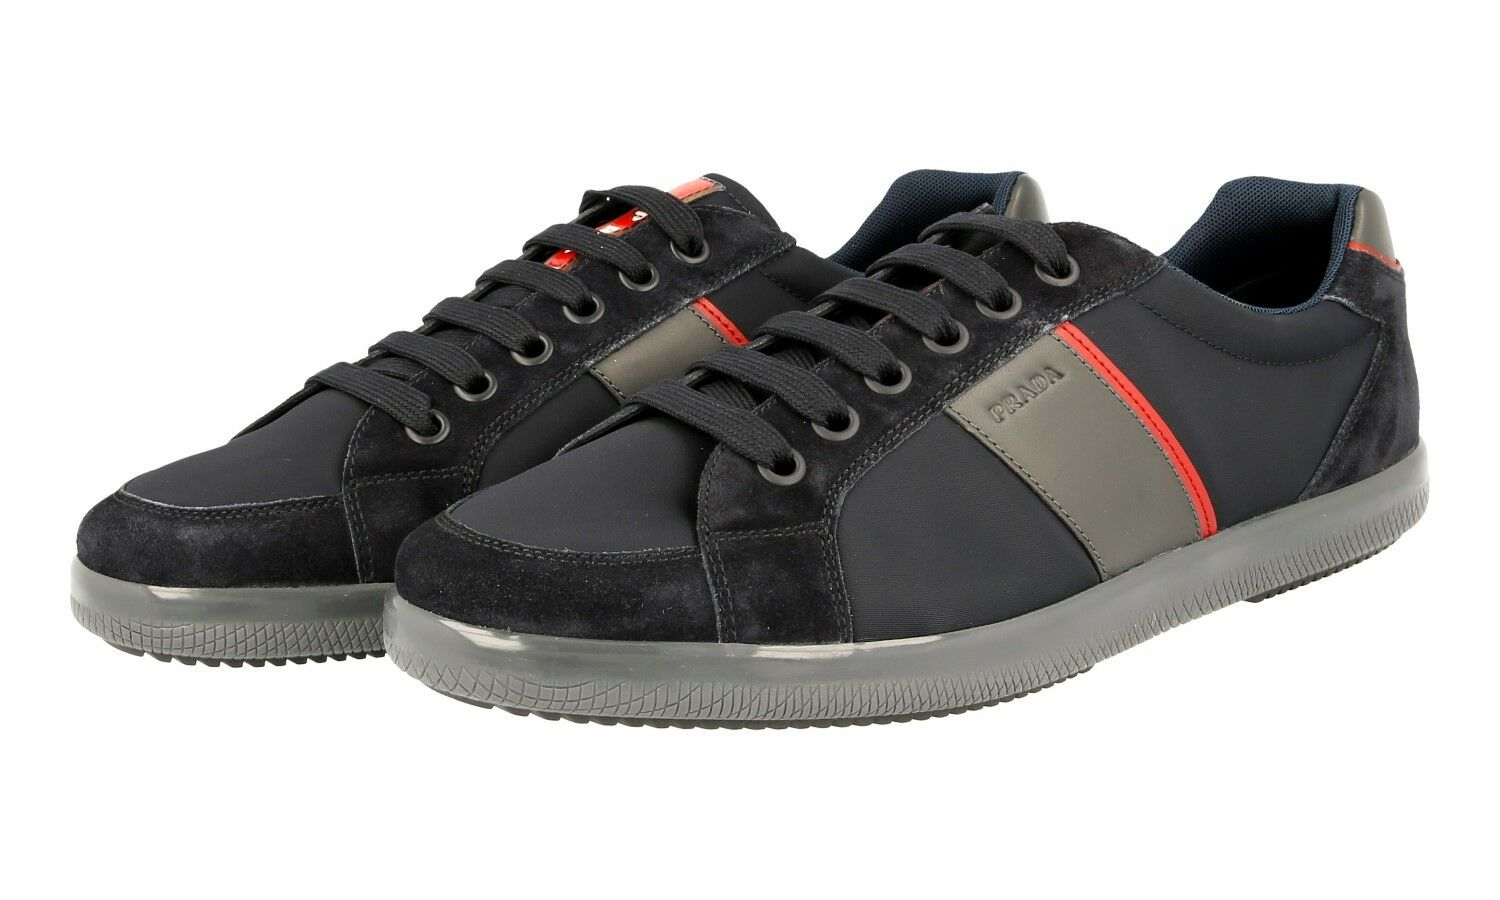 LUXUS PRADA SNEAKER SCHUHE 4E3043 blue red NEU NEW 9,5 43,5 44